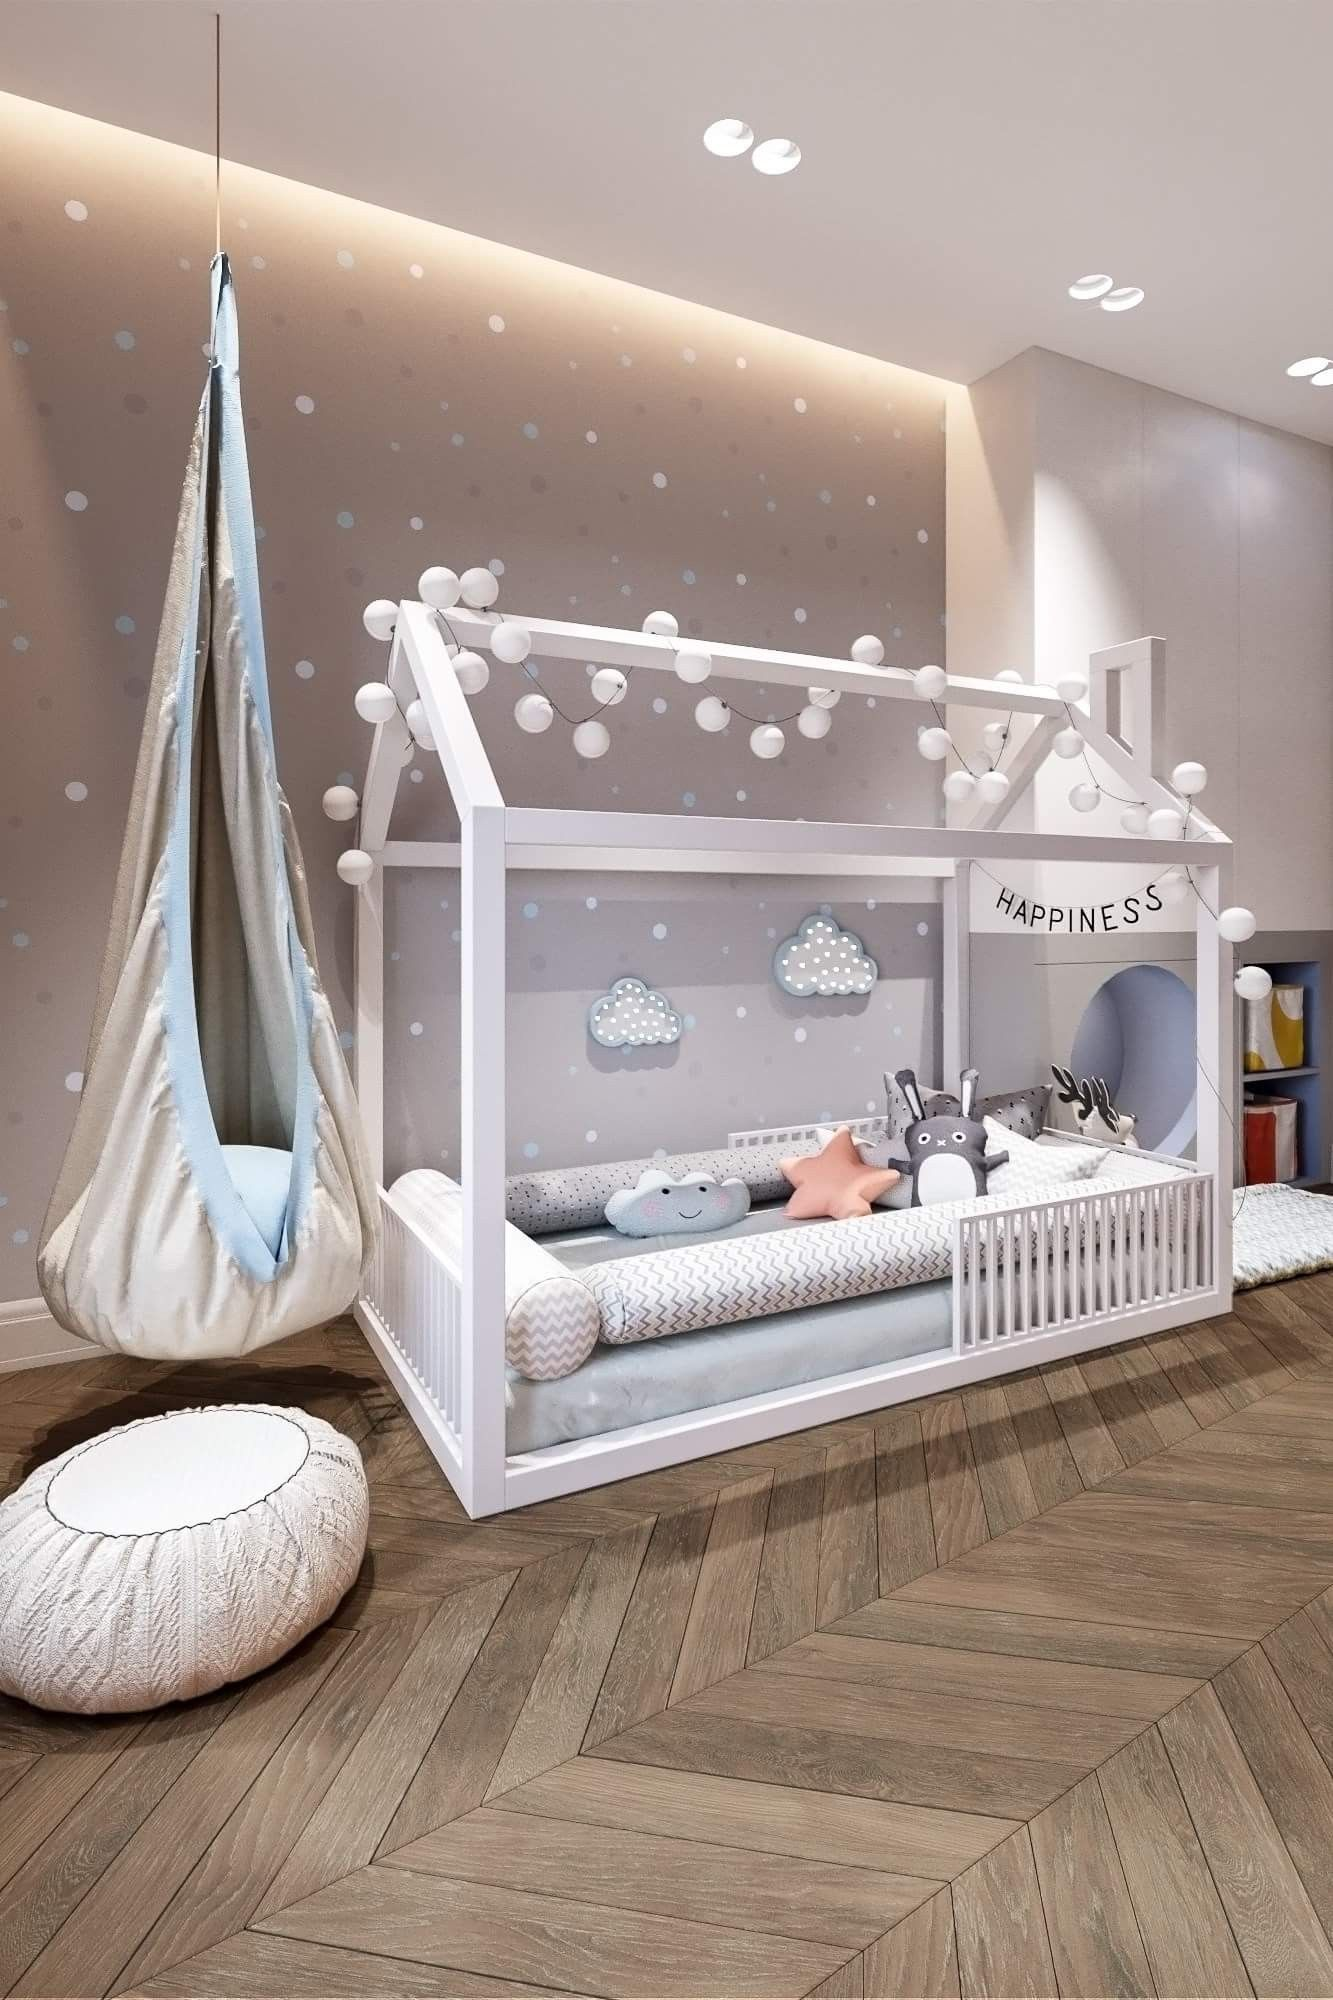 45+ Best Childrens Beds Single / Double With Storage And Desk for Home #toddlerrooms